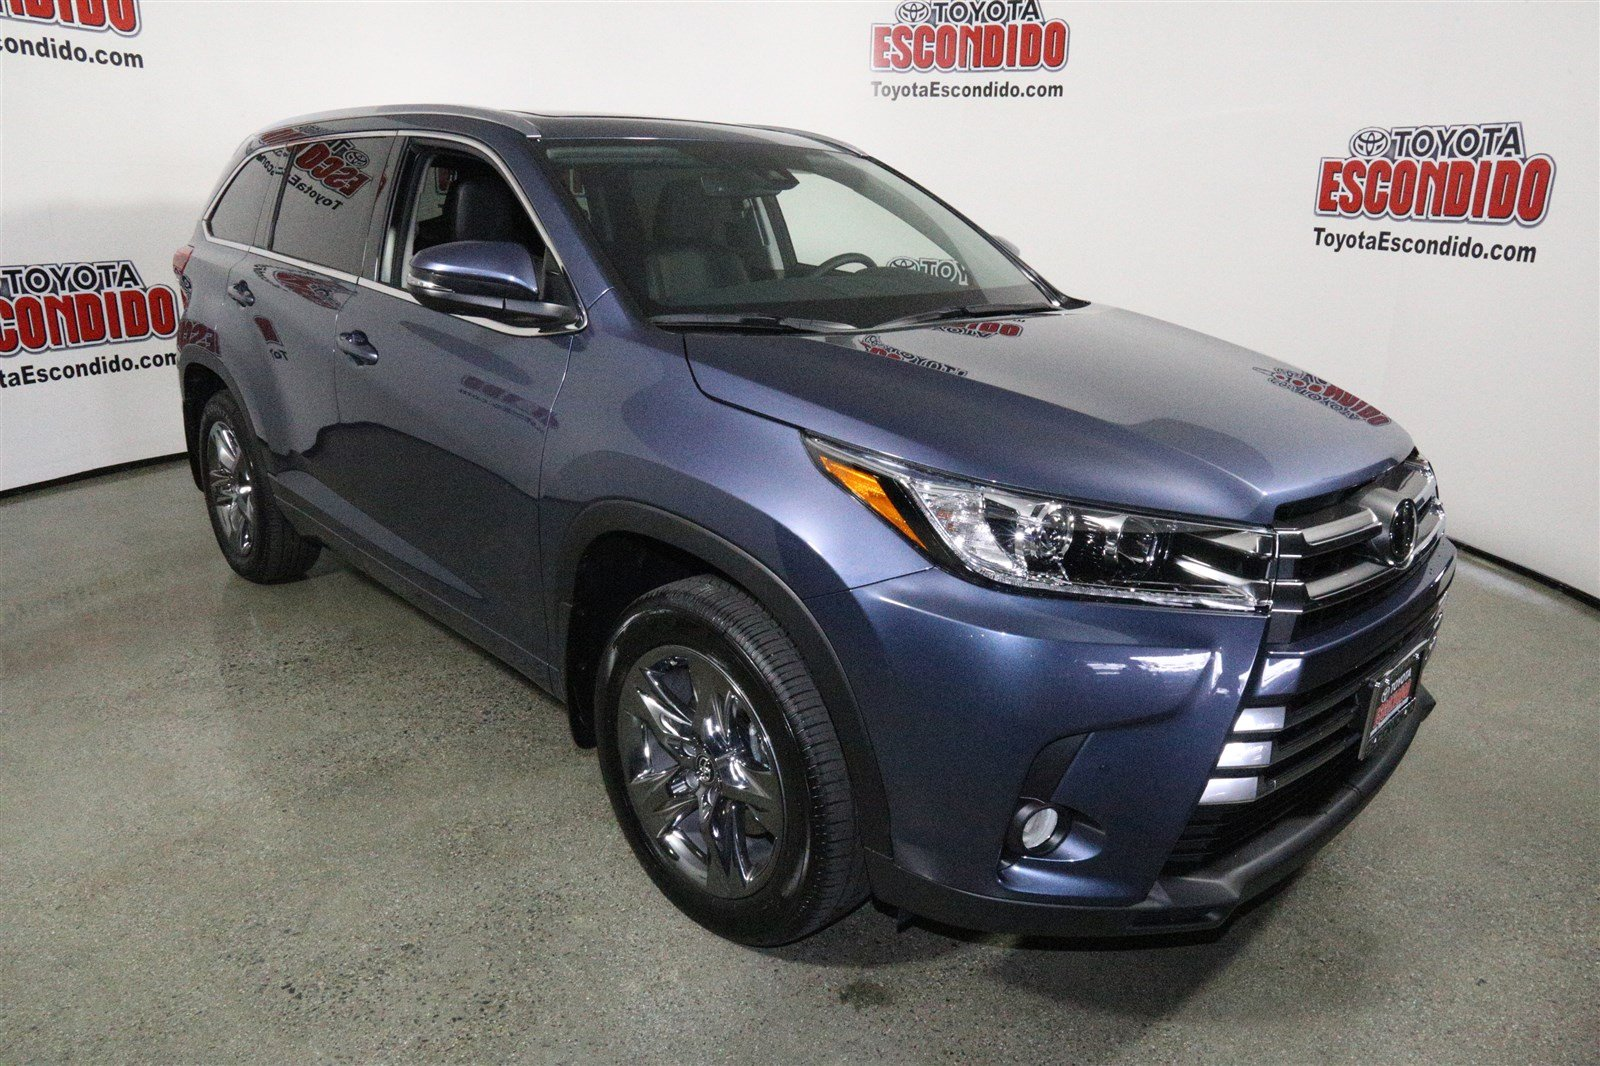 new 2017 toyota highlander limited platinum sport utility in escondido hs444634 toyota escondido. Black Bedroom Furniture Sets. Home Design Ideas